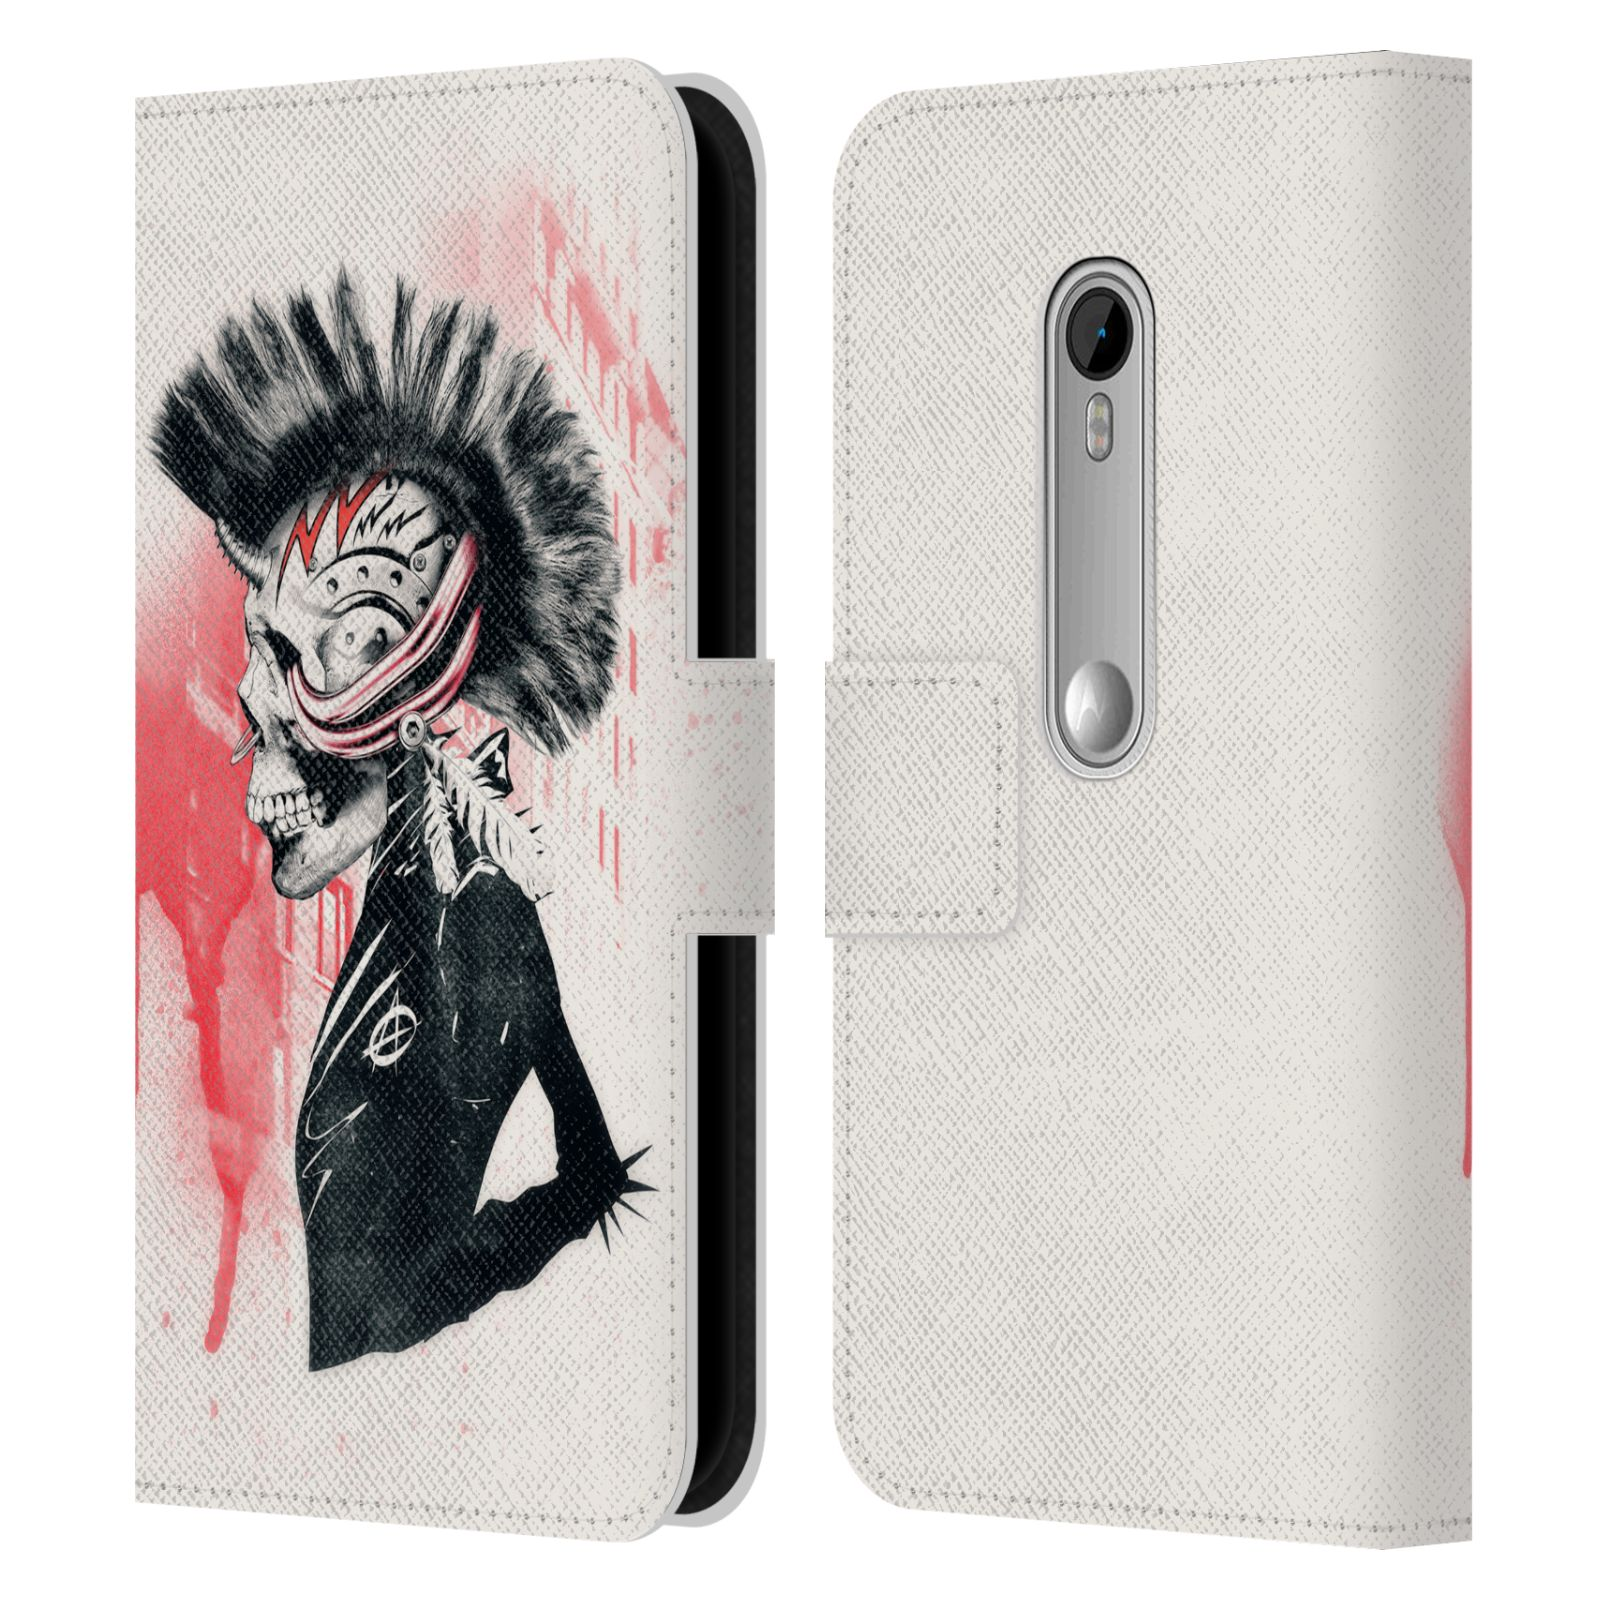 OFFICIAL-ALI-GULEC-WITH-A-TWIST-LEATHER-BOOK-WALLET-CASE-FOR-MOTOROLA-PHONES